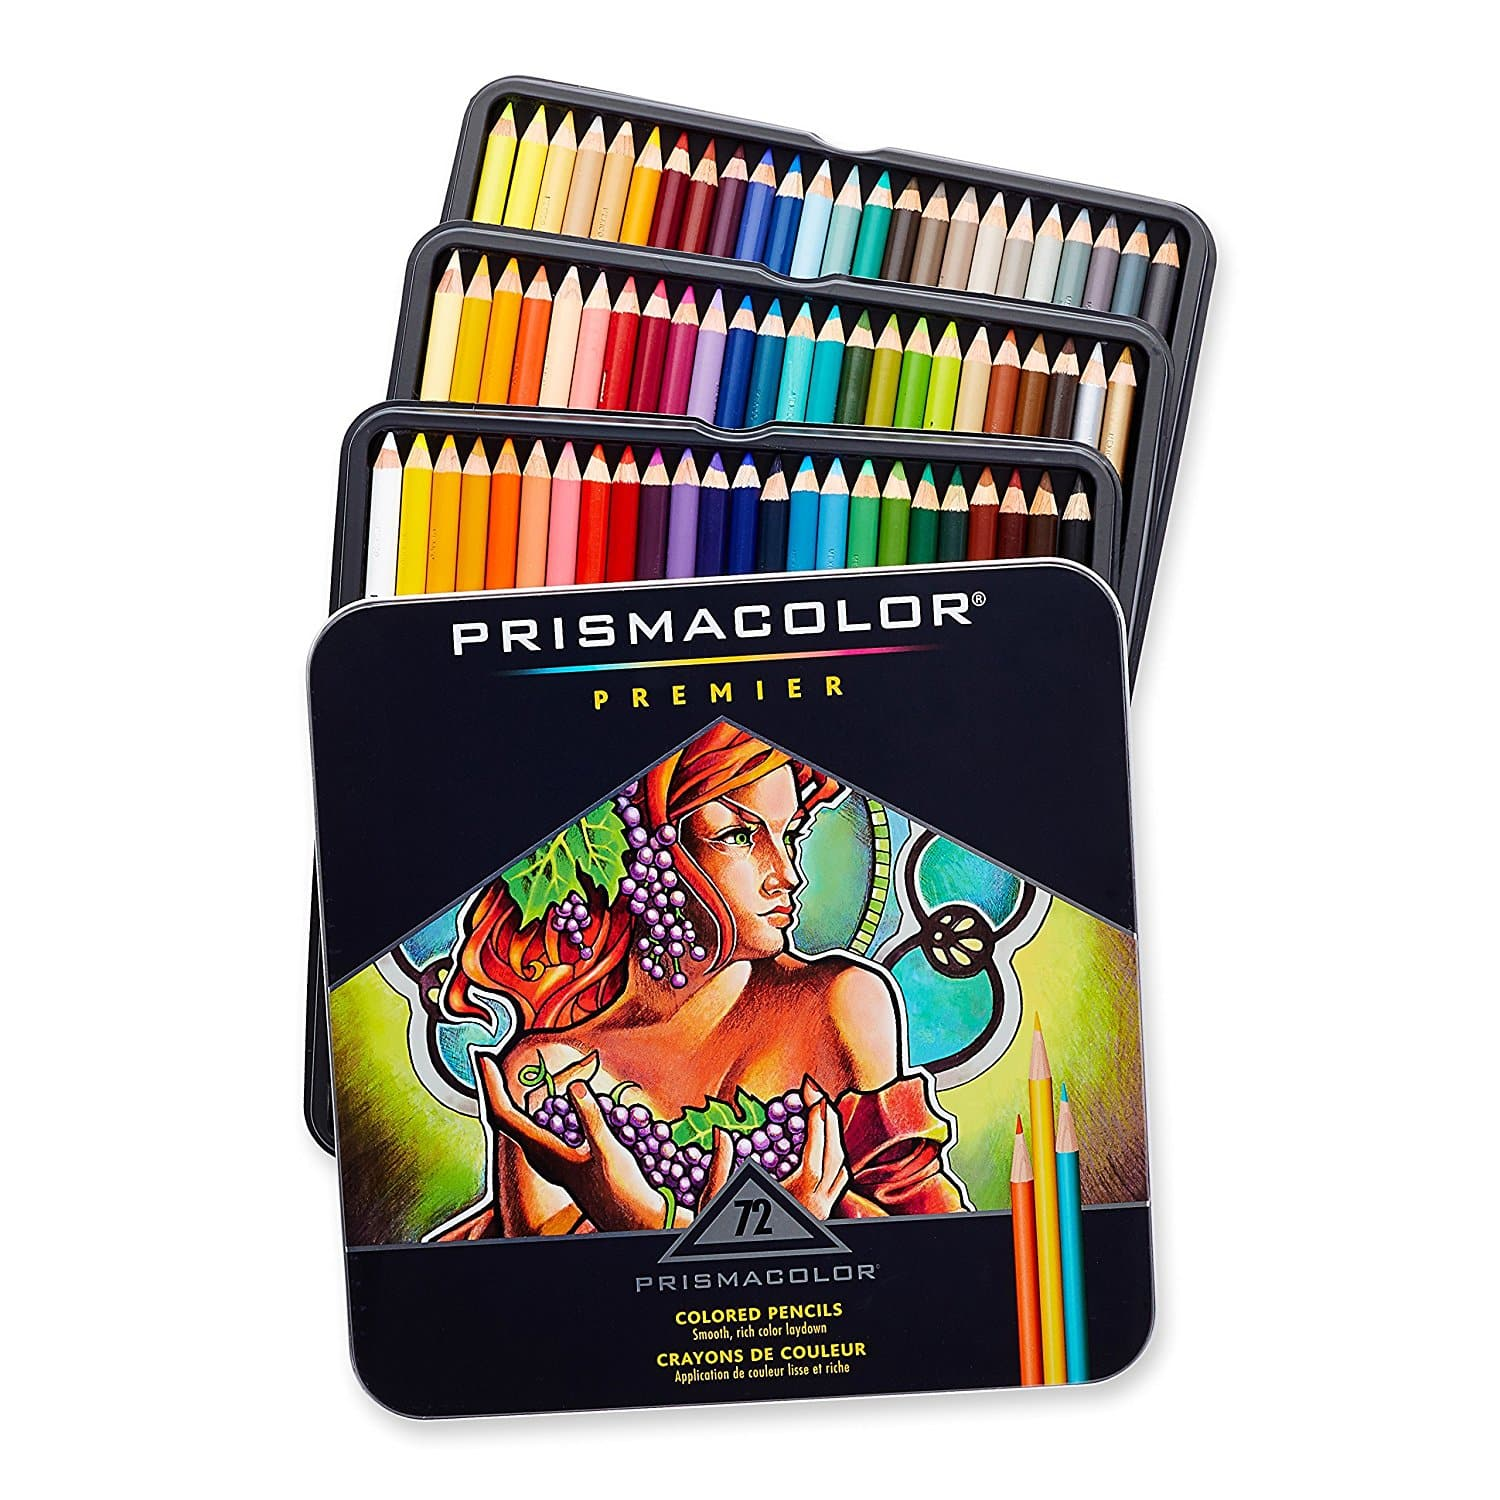 72-Count Prismacolor Premier Soft Core Colored Pencils  $21.25 @ Amazon